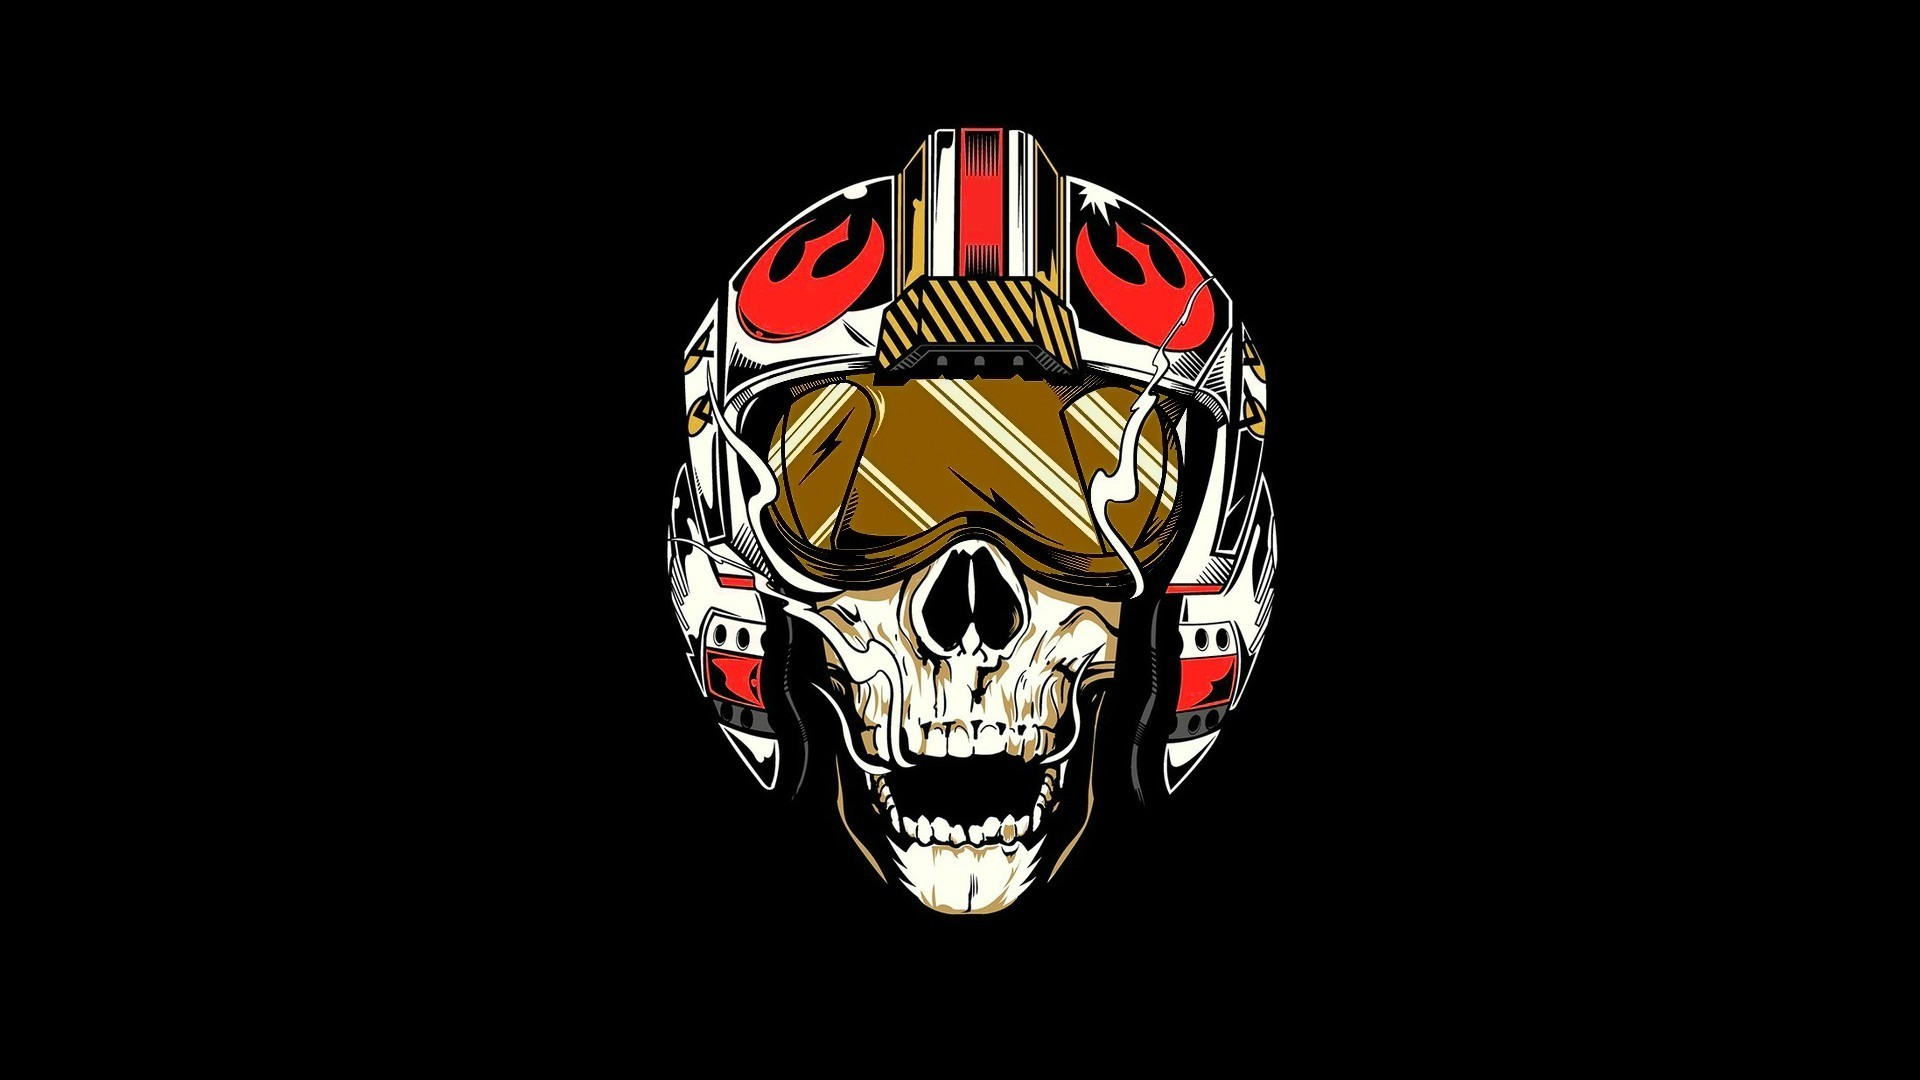 1920x1080 Star Wars, Rebel Alliance, Pilot, Skull Wallpapers HD / Desktop .